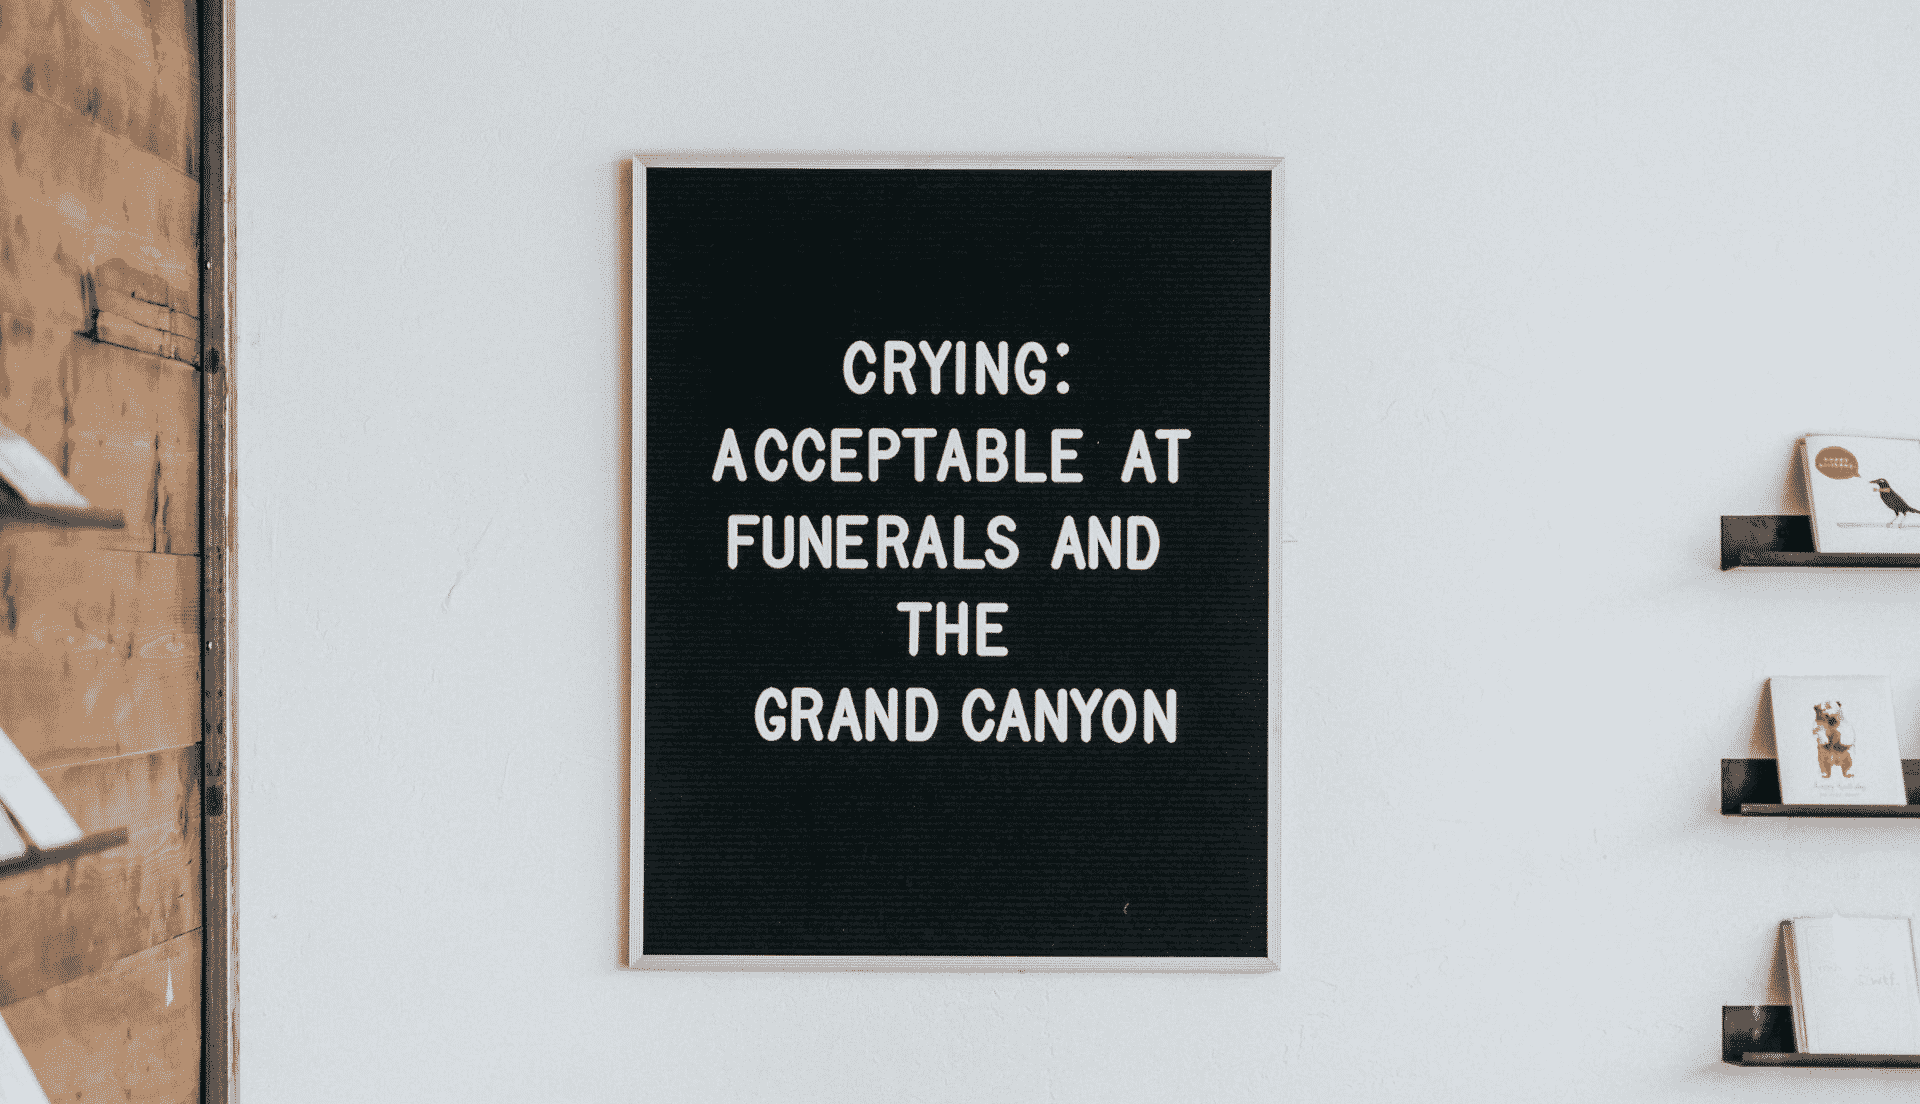 wall framed quotes about crying